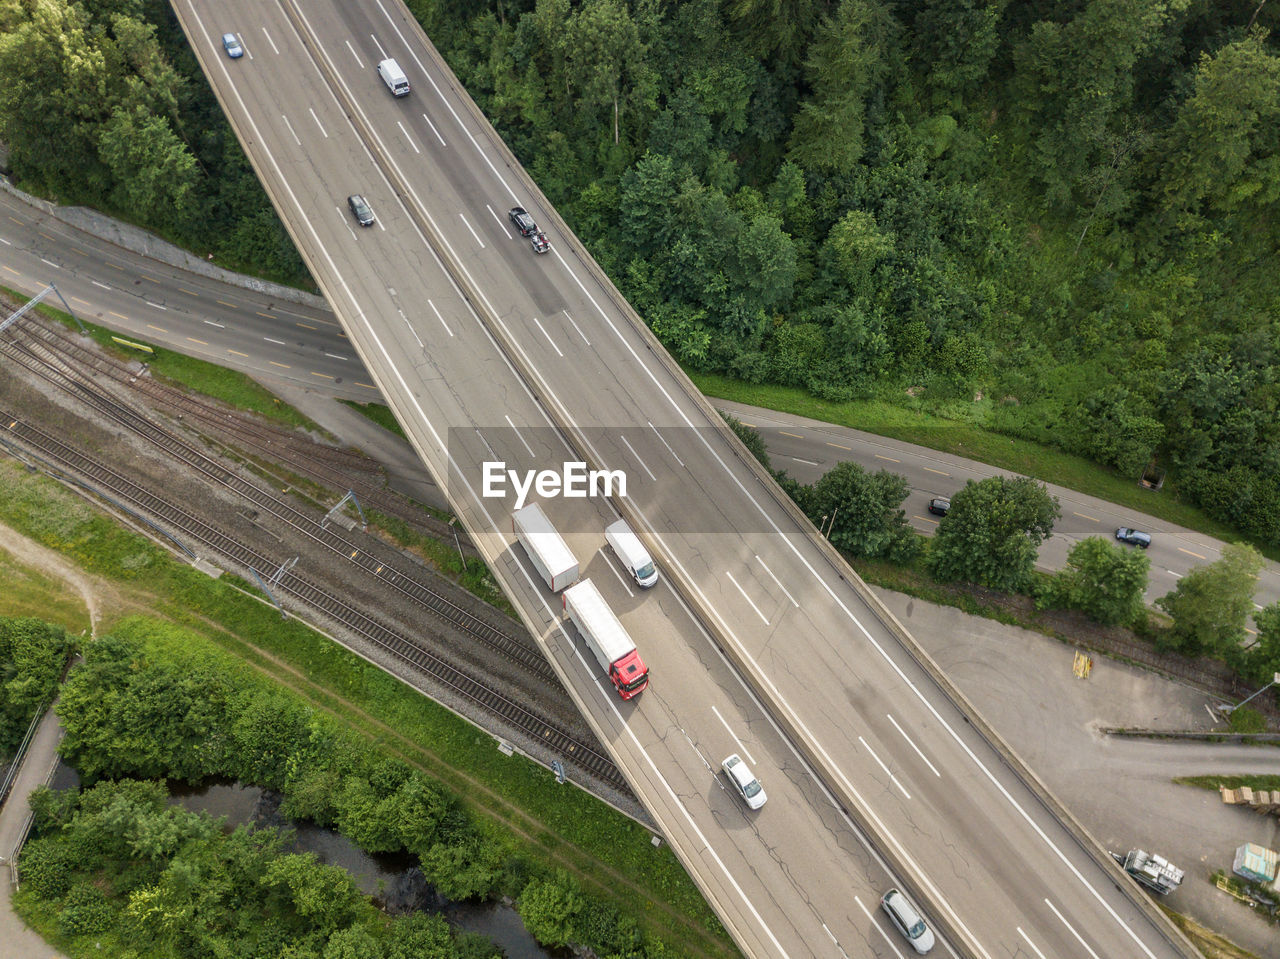 transportation, road, highway, land vehicle, high angle view, mode of transportation, tree, plant, motion, no people, nature, car, motor vehicle, day, traffic, multiple lane highway, outdoors, travel, city, truck